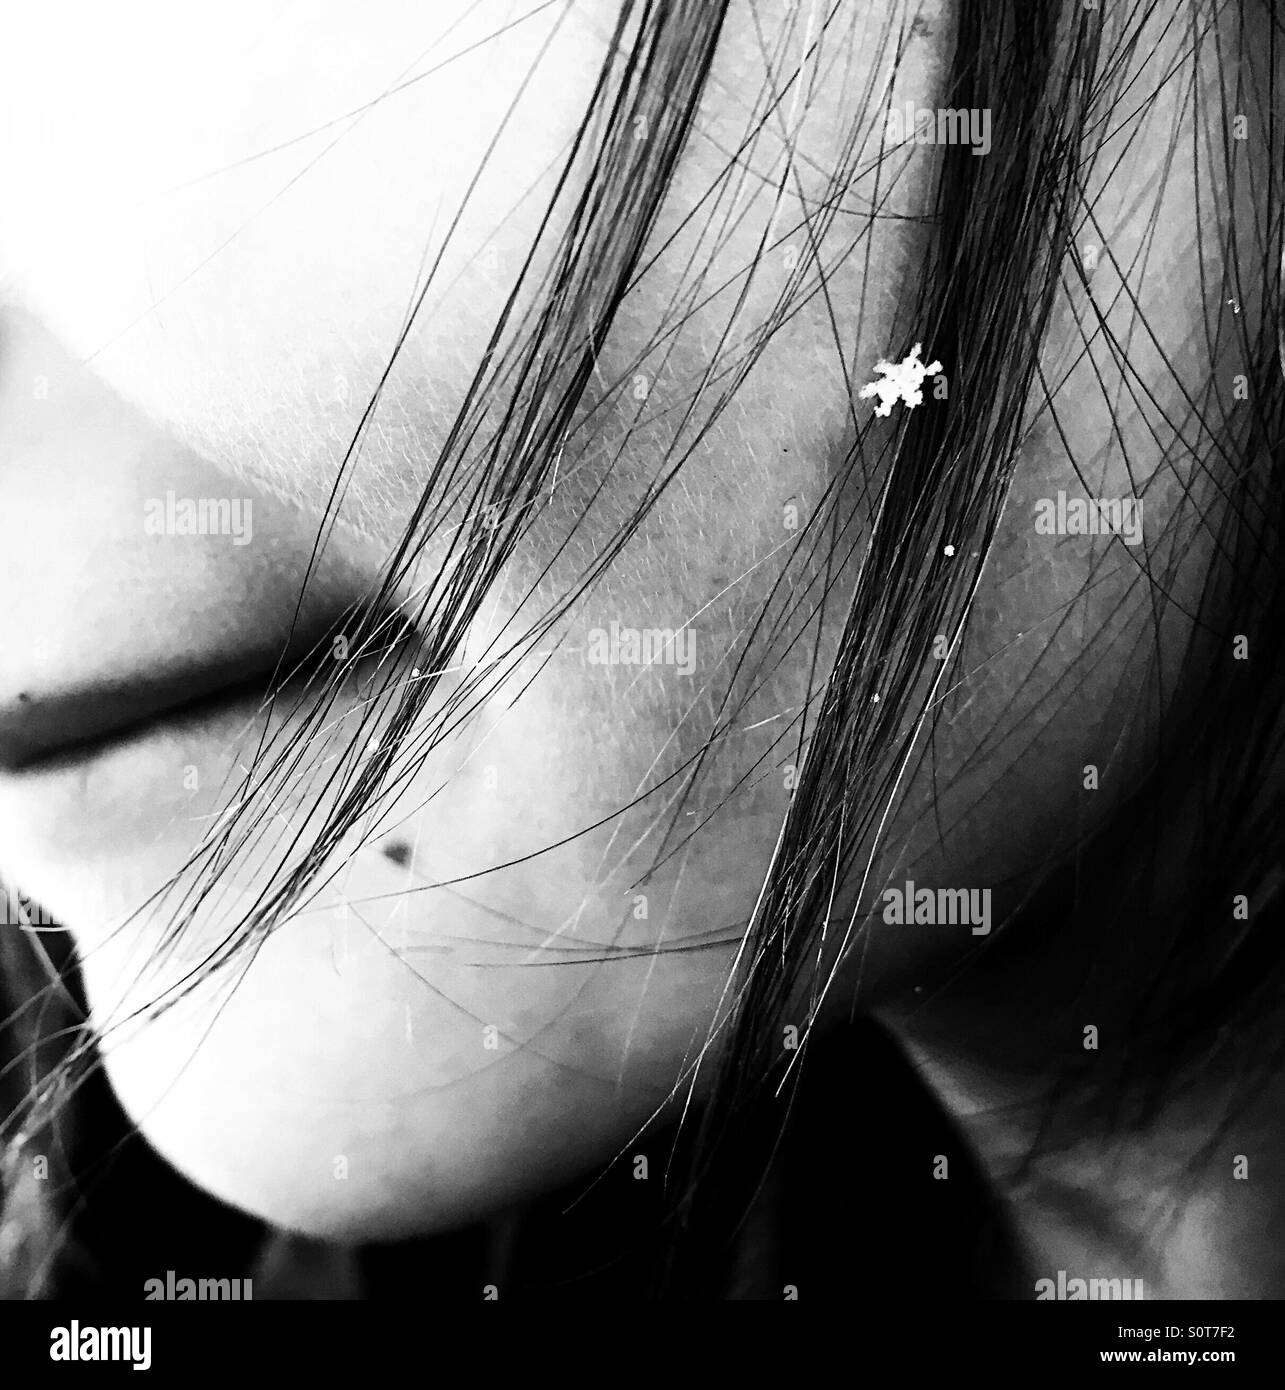 One perfect little snowflake in a girl's hair. - Stock Image